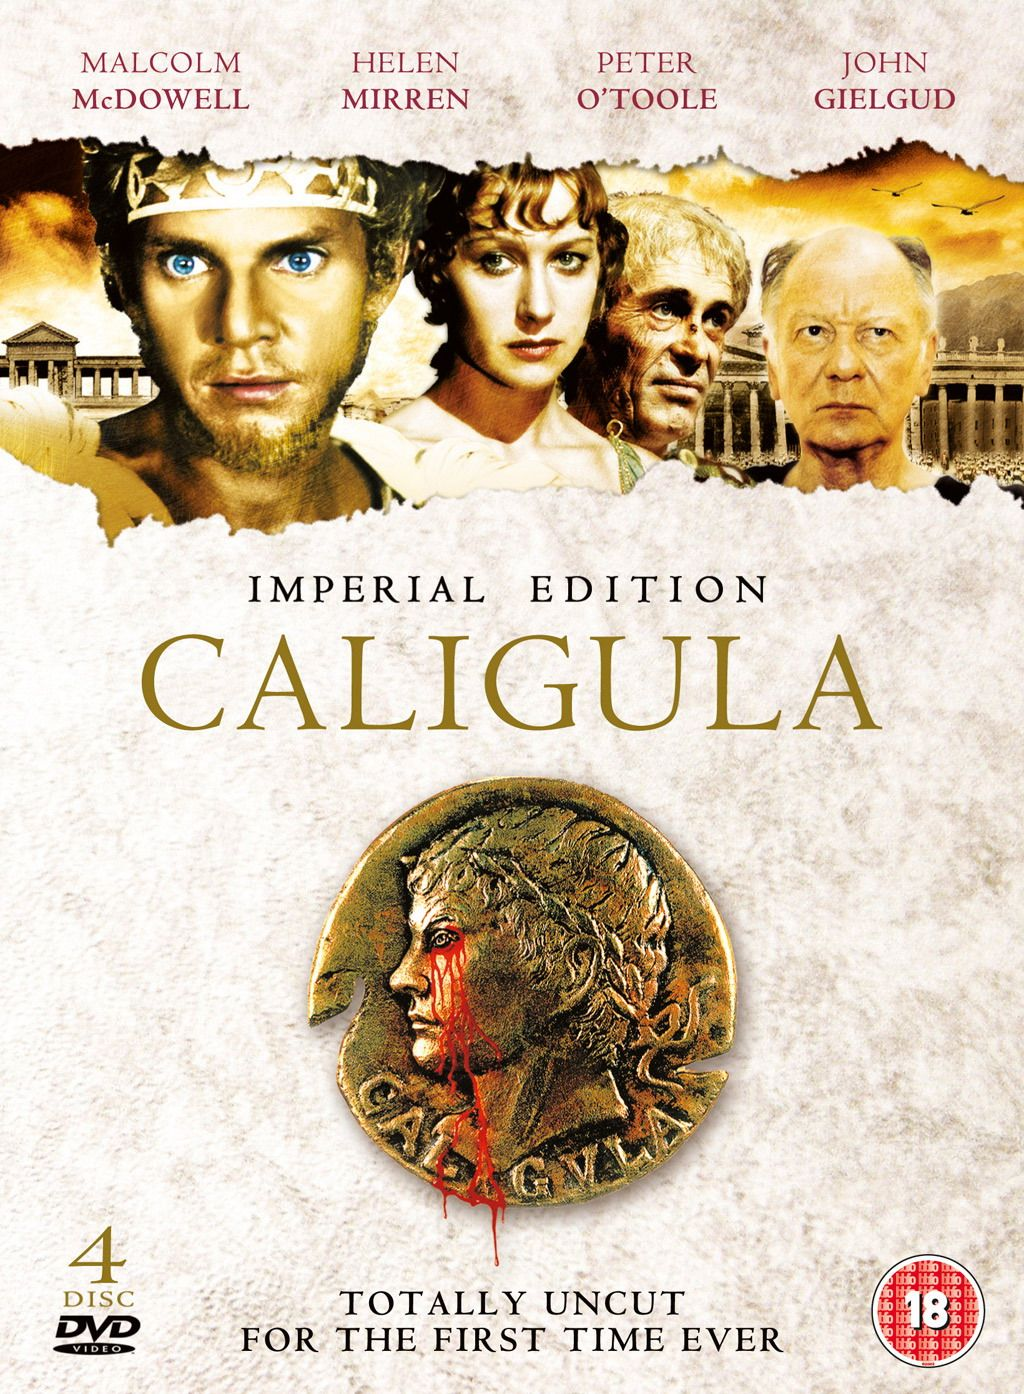 Caligula Directed By Tinto Brass Screenplay By Gore Vidal Starring Malcolm Mcdowell And Peter Otoole Objections For Violence Nudity Perversion